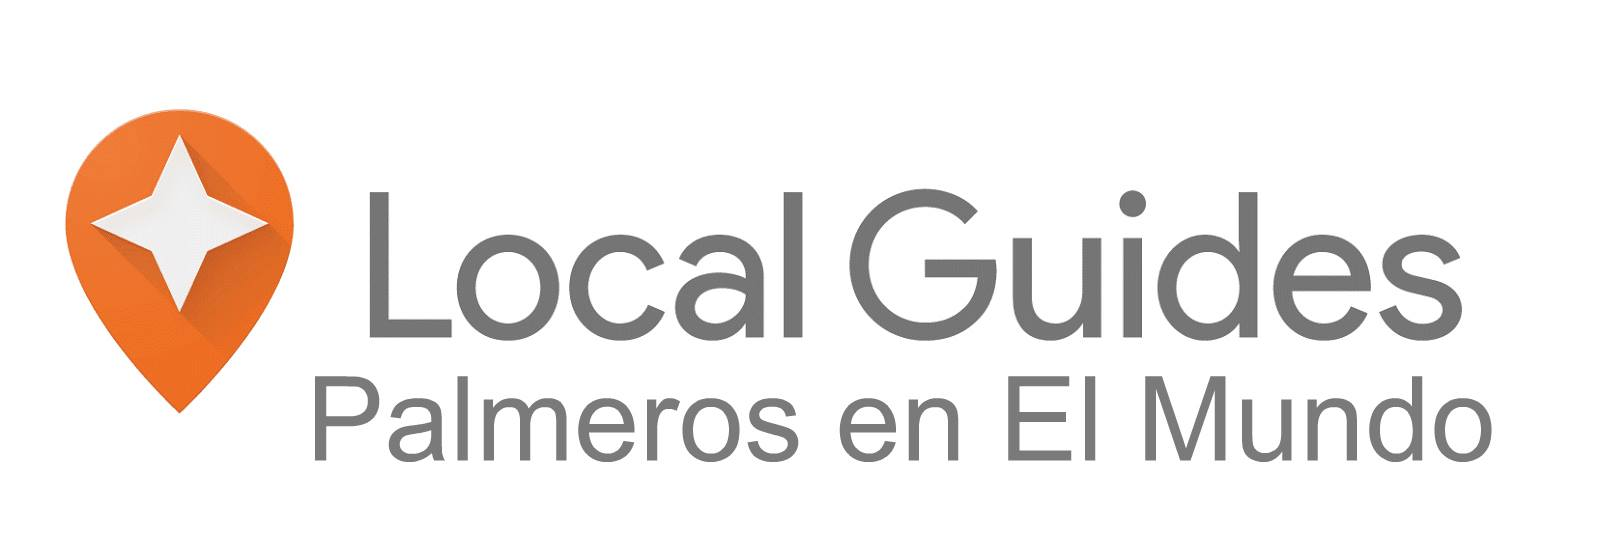 canal local guides